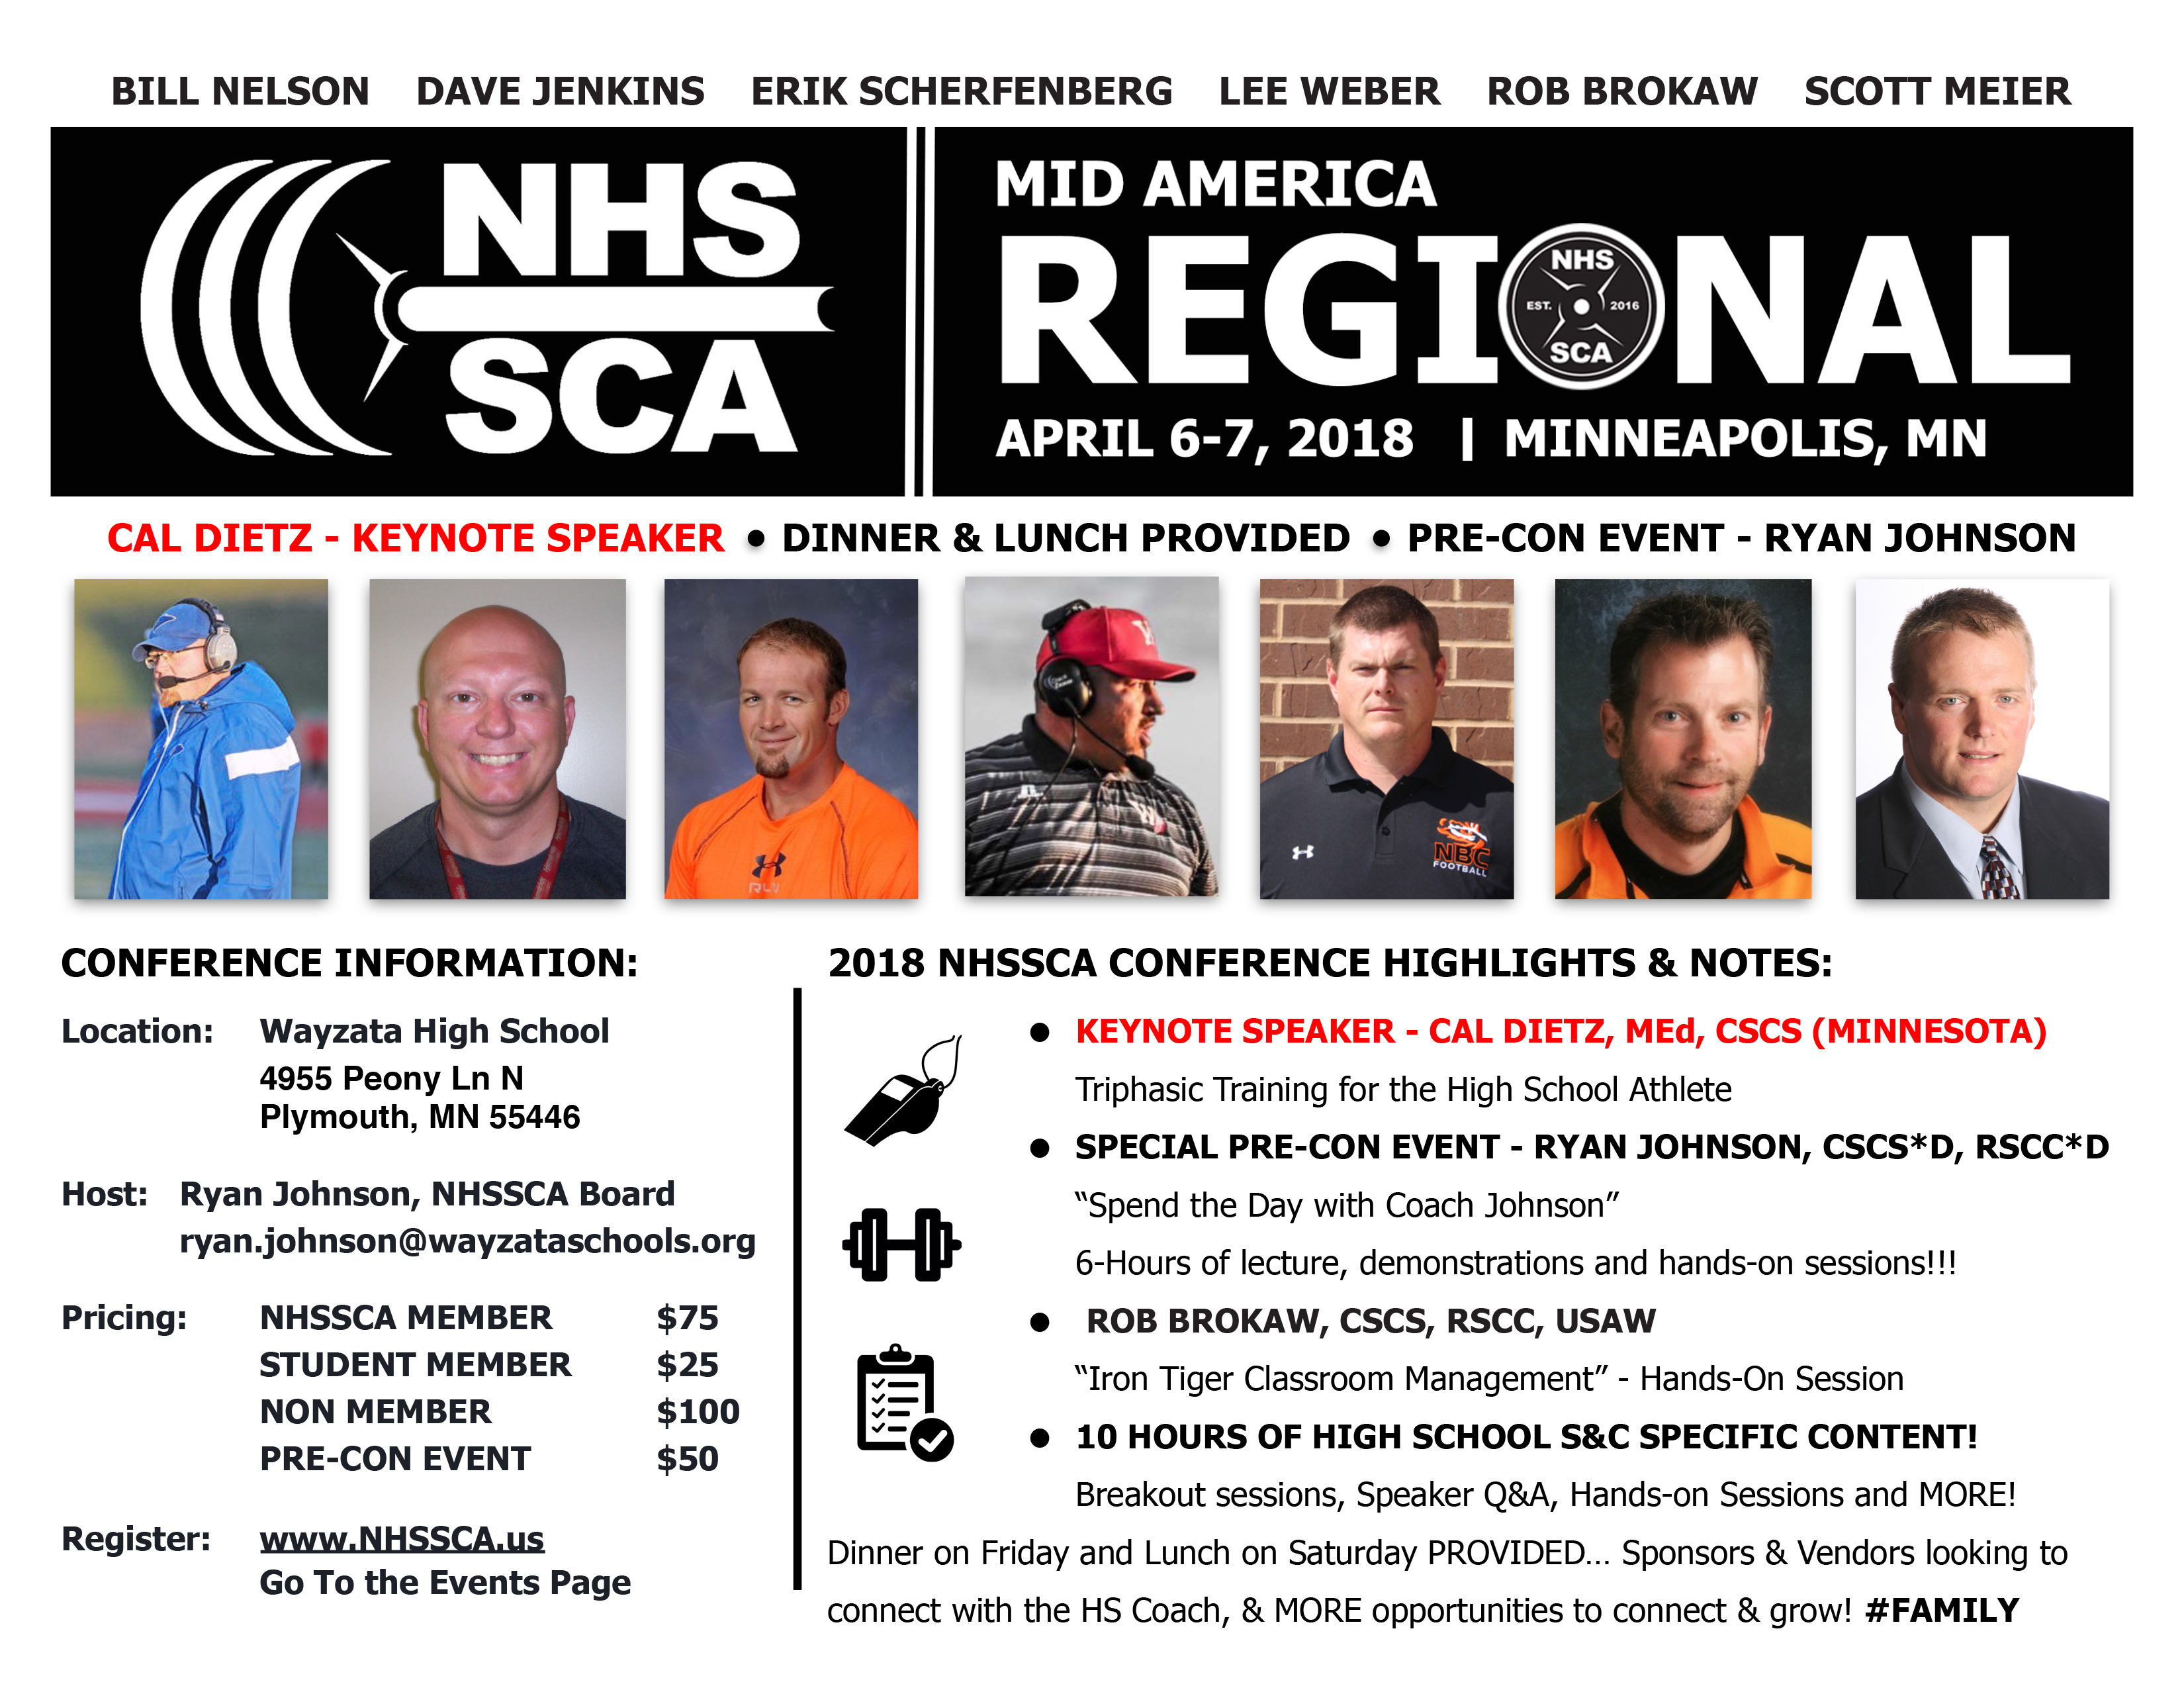 2018 Mid America Regional Conference - HS Strength Coaches